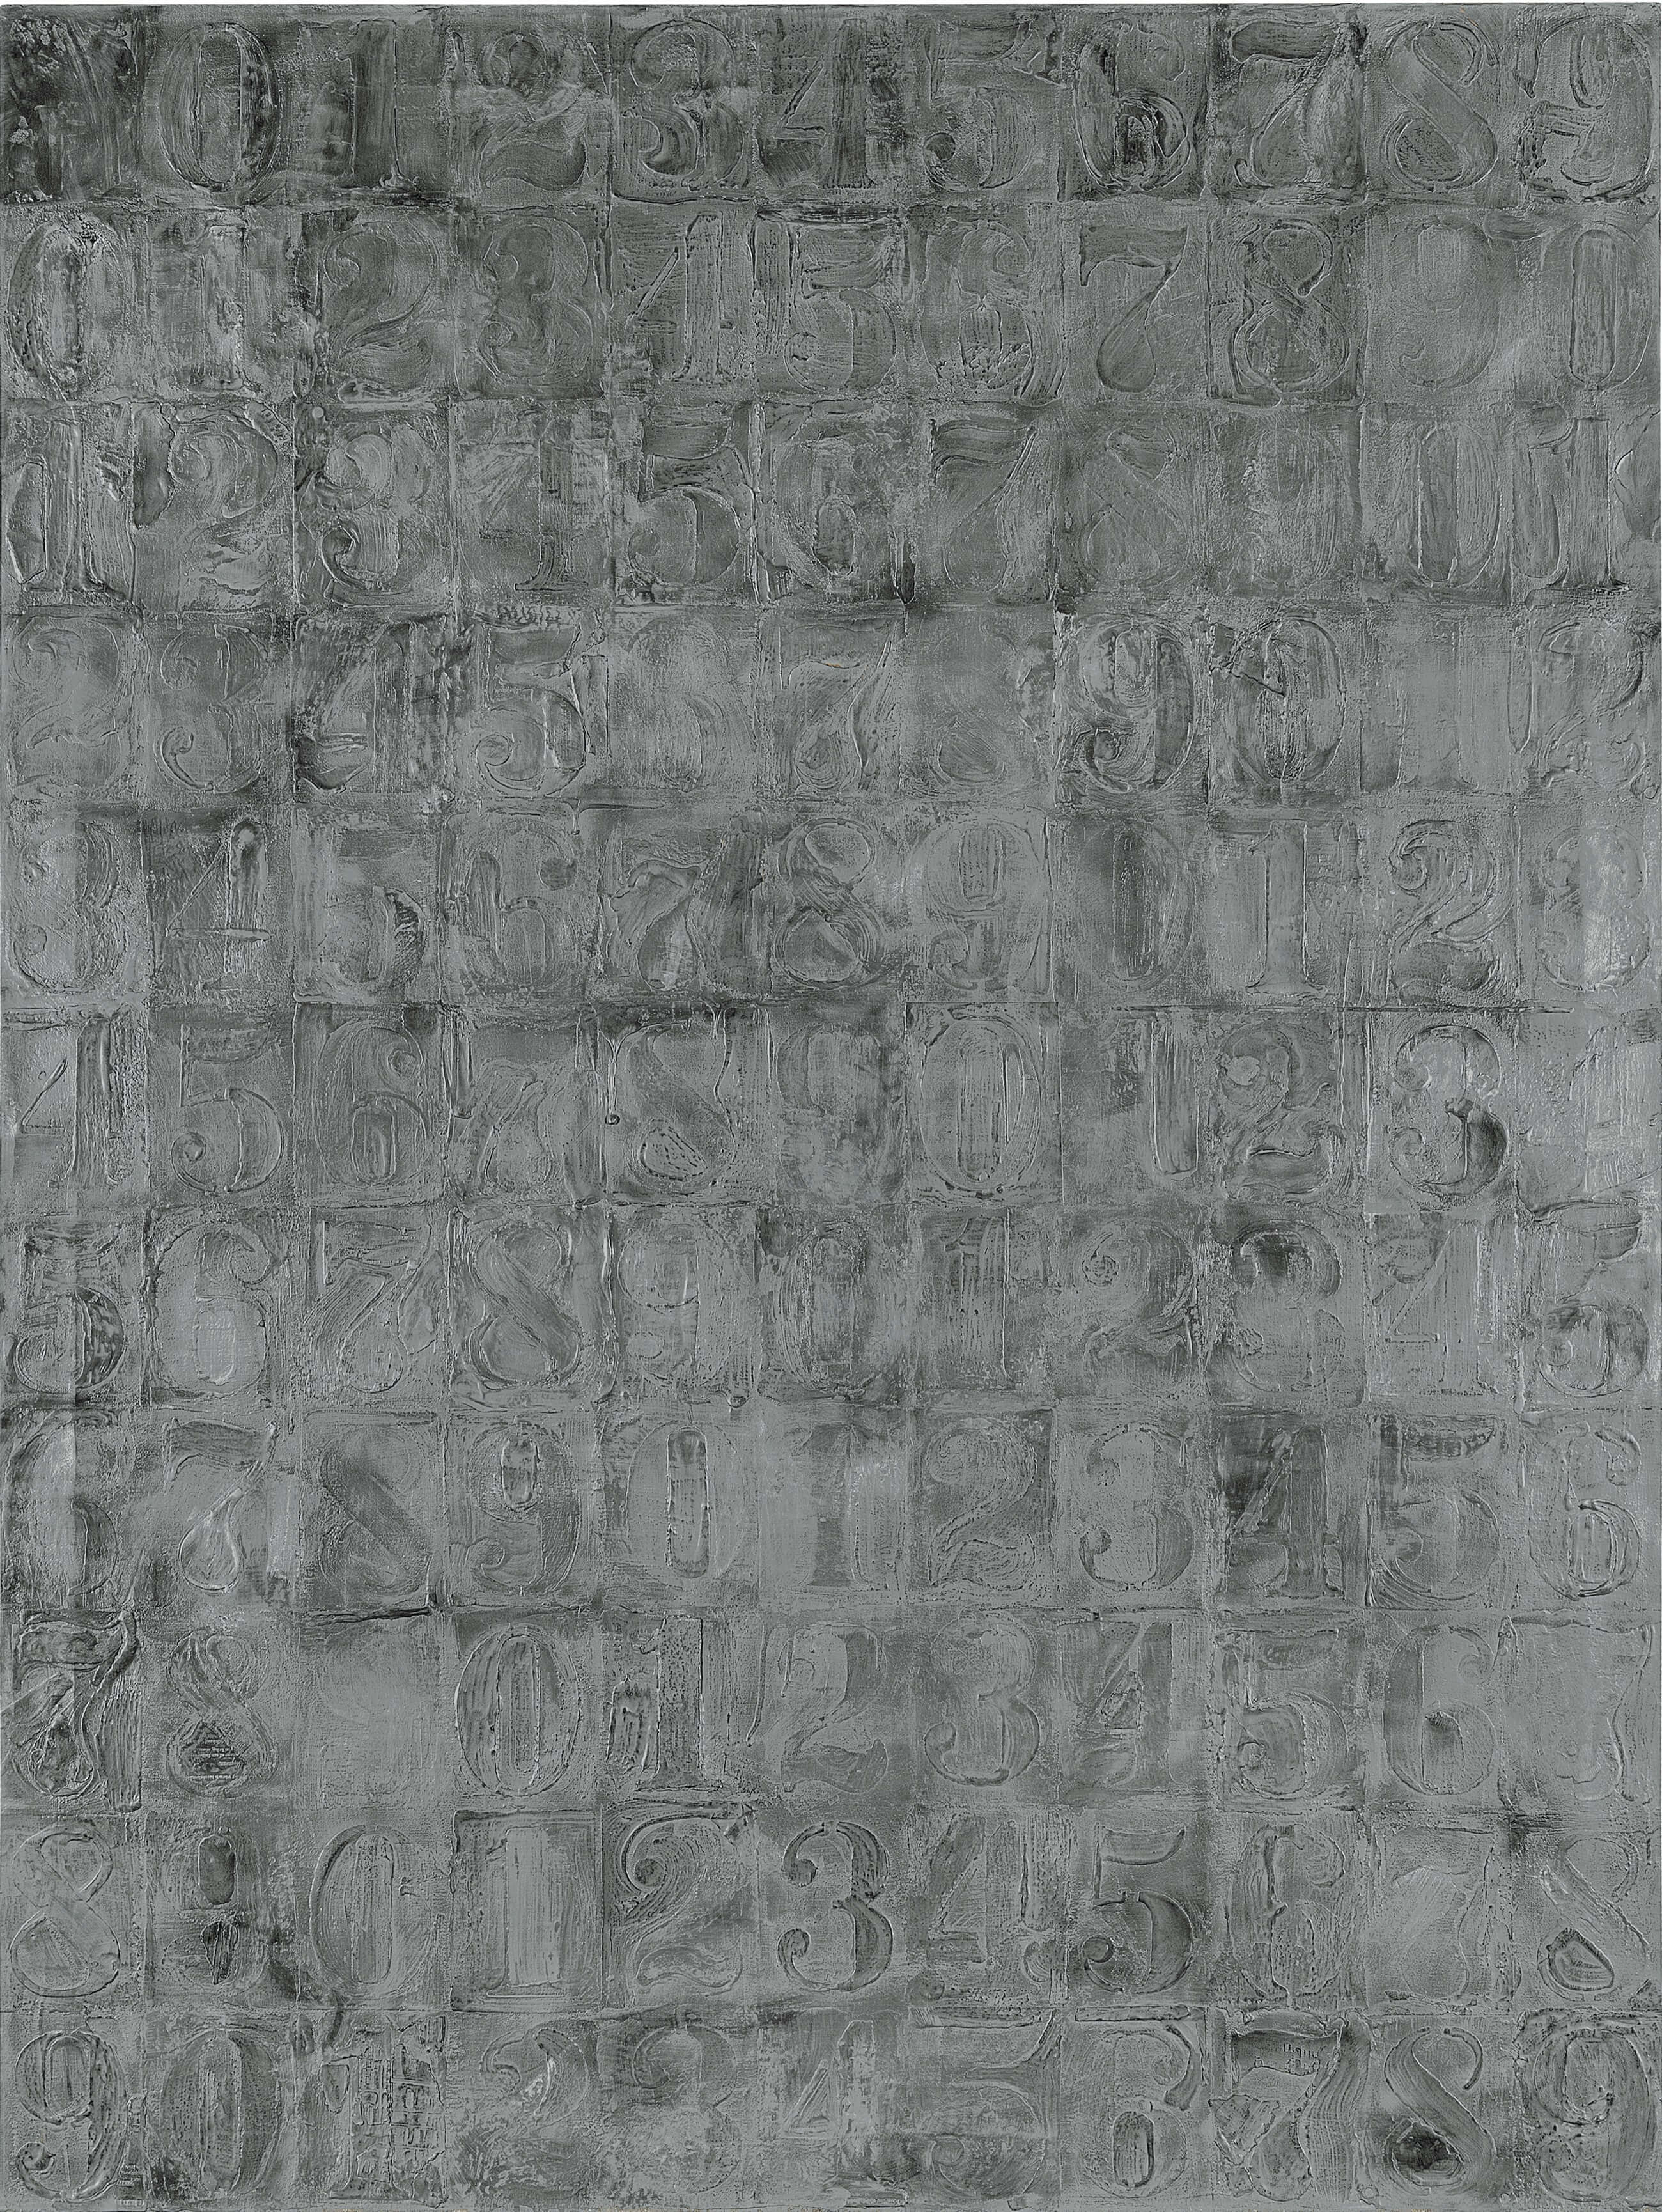 Numbers, 1963, by Jasper Johns